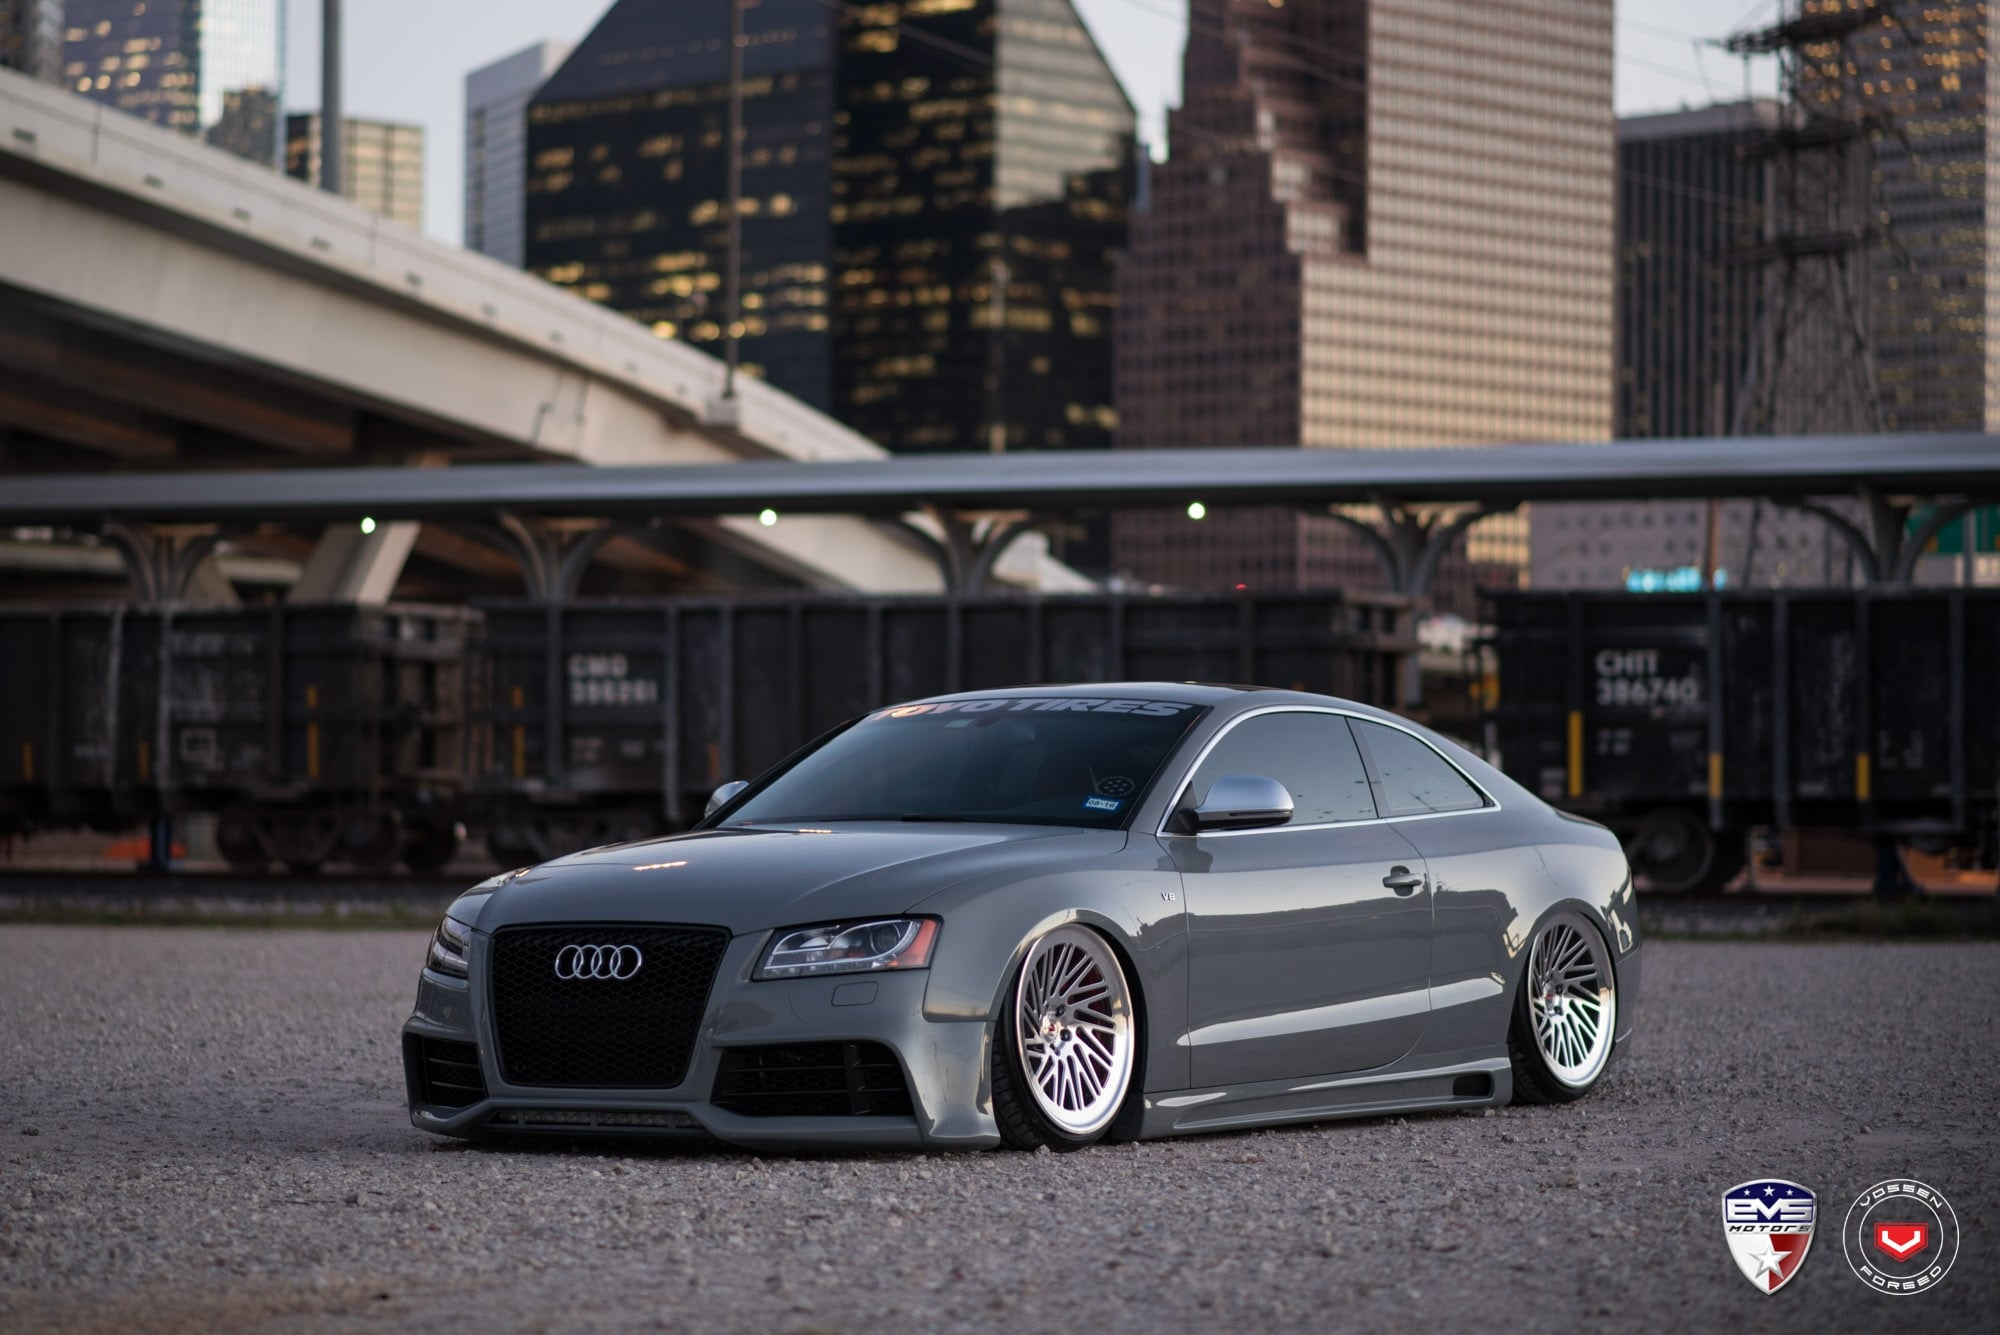 Tuner Car Wallpaper Hd 2015 Audi S5 Coupe Tuning Wallpapers Hd Download